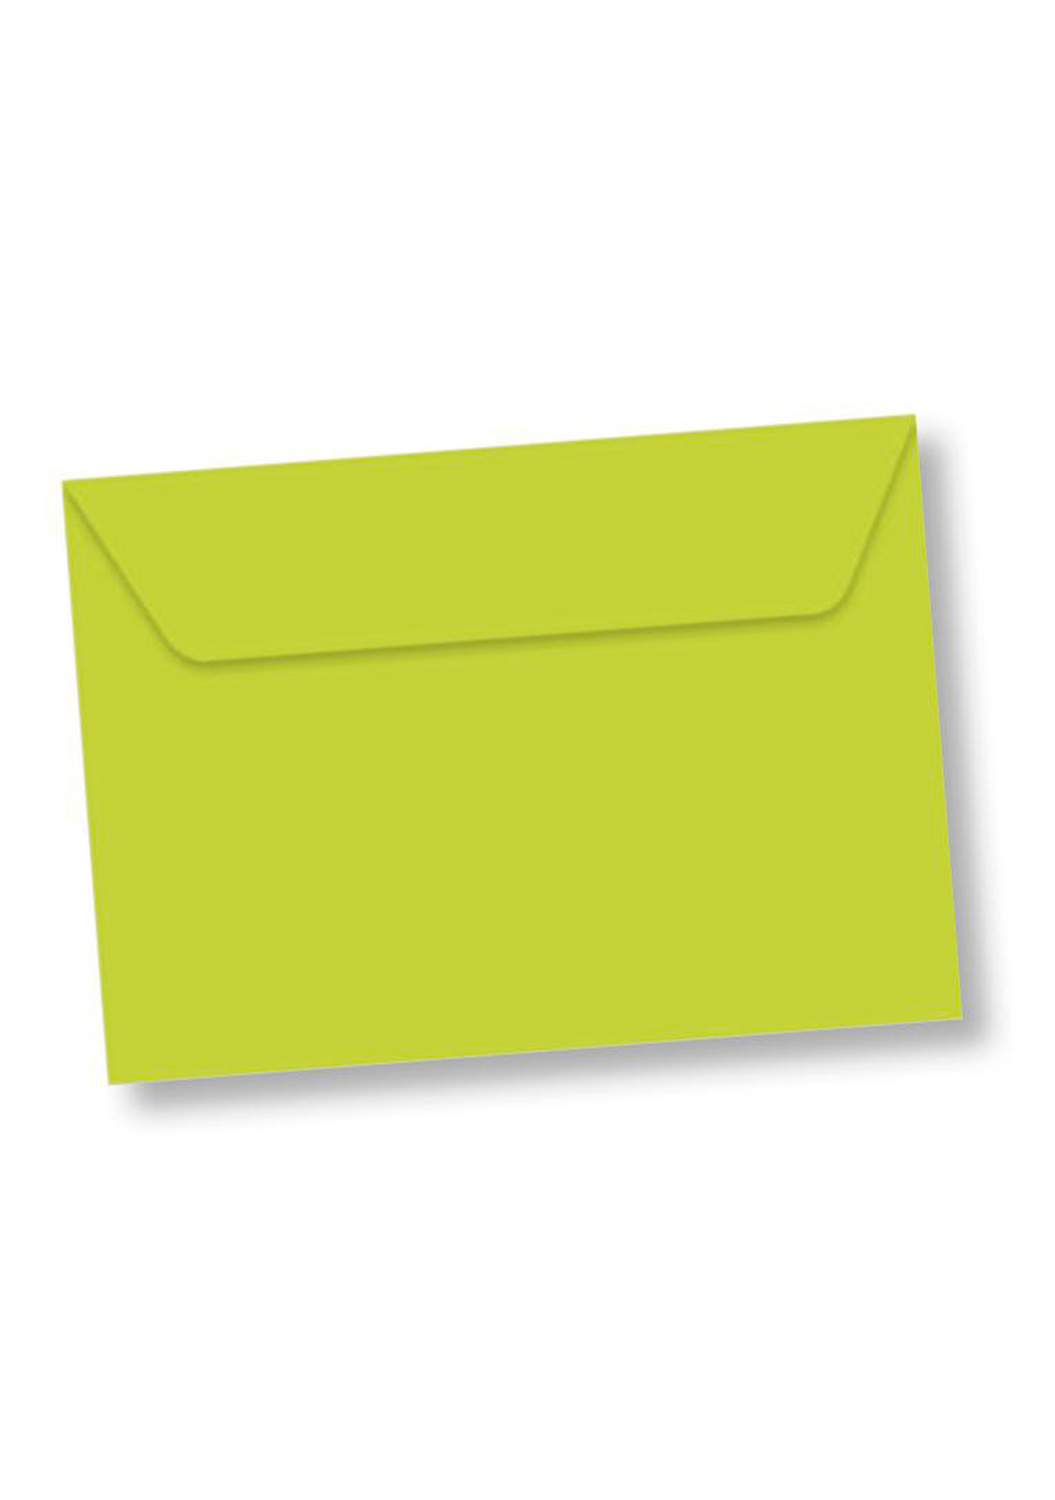 Marcello-art : Cartes de faire part Enveloppe rectangle A5 velin 162x229 mm couleur bambou